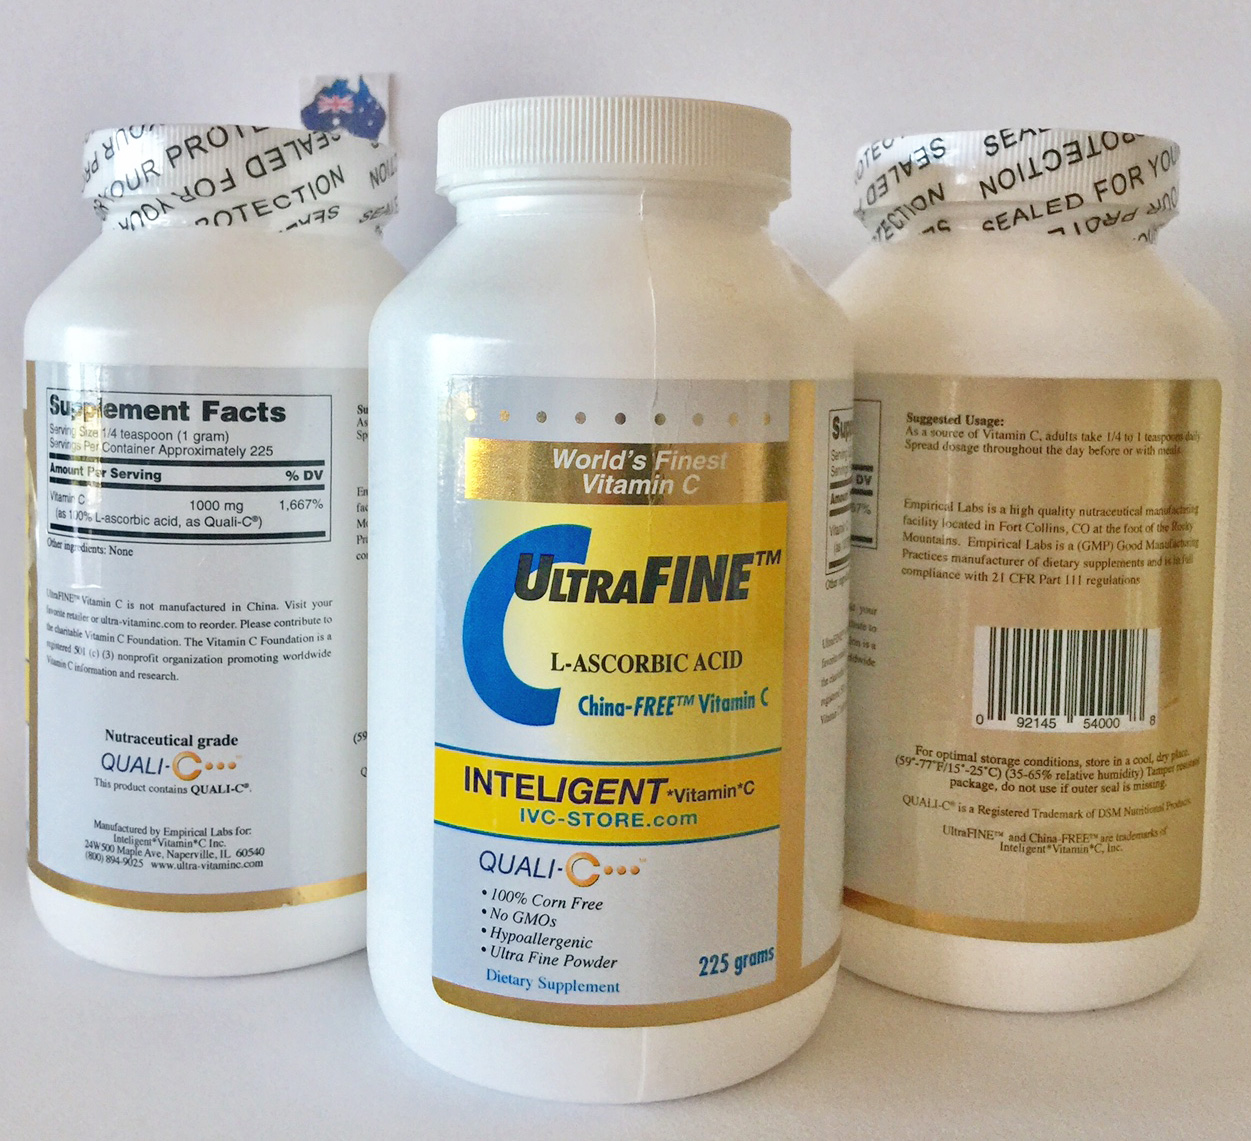 Fight Oxidative Stress - Suitable for Higher Doses Pharmaceutical Grade Pure L-Ascorbic AcidBuy Now